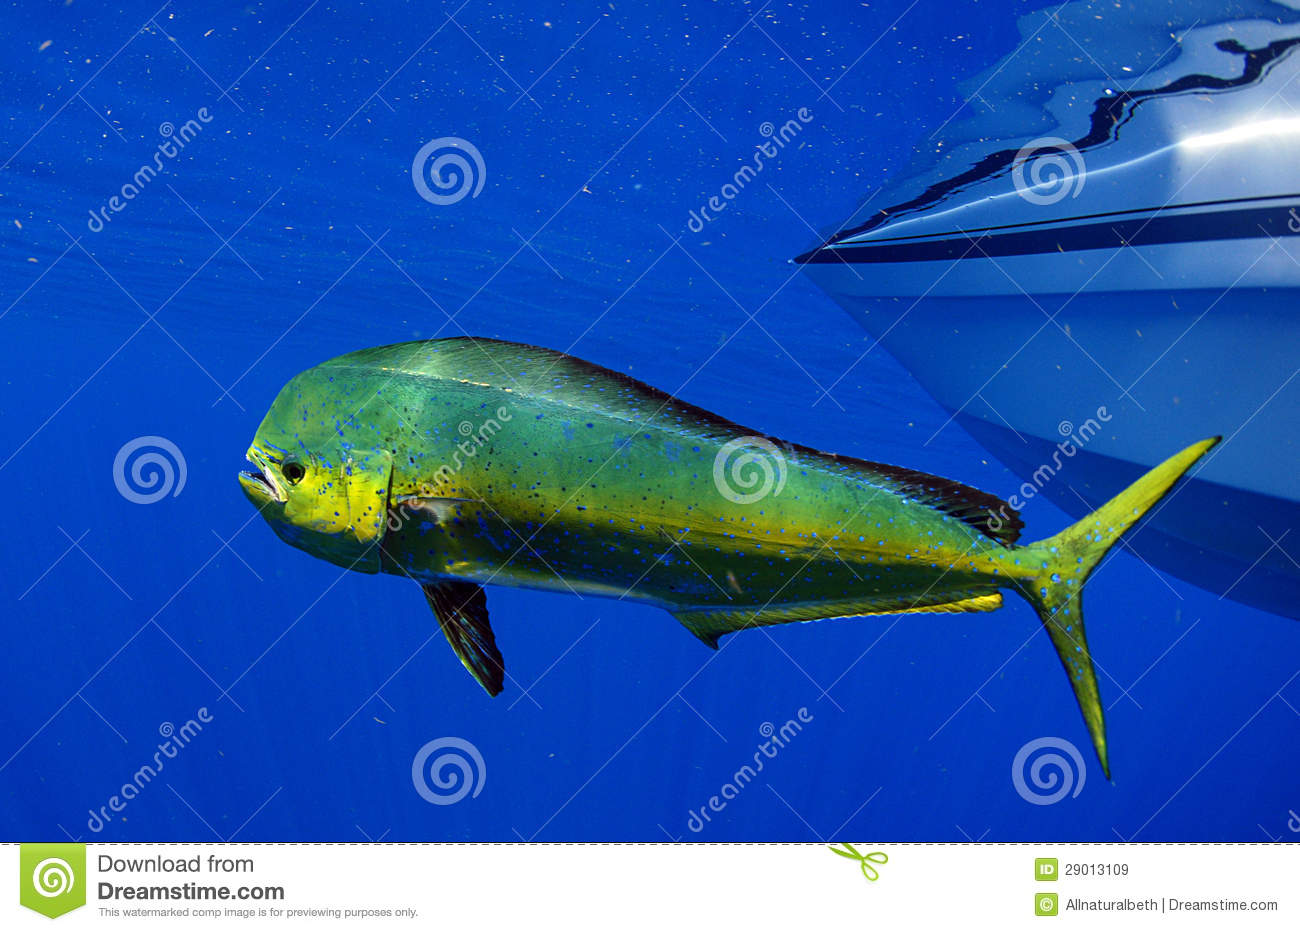 Mahi mahi or dolphin fish royalty free stock images for Is a dolphin a fish